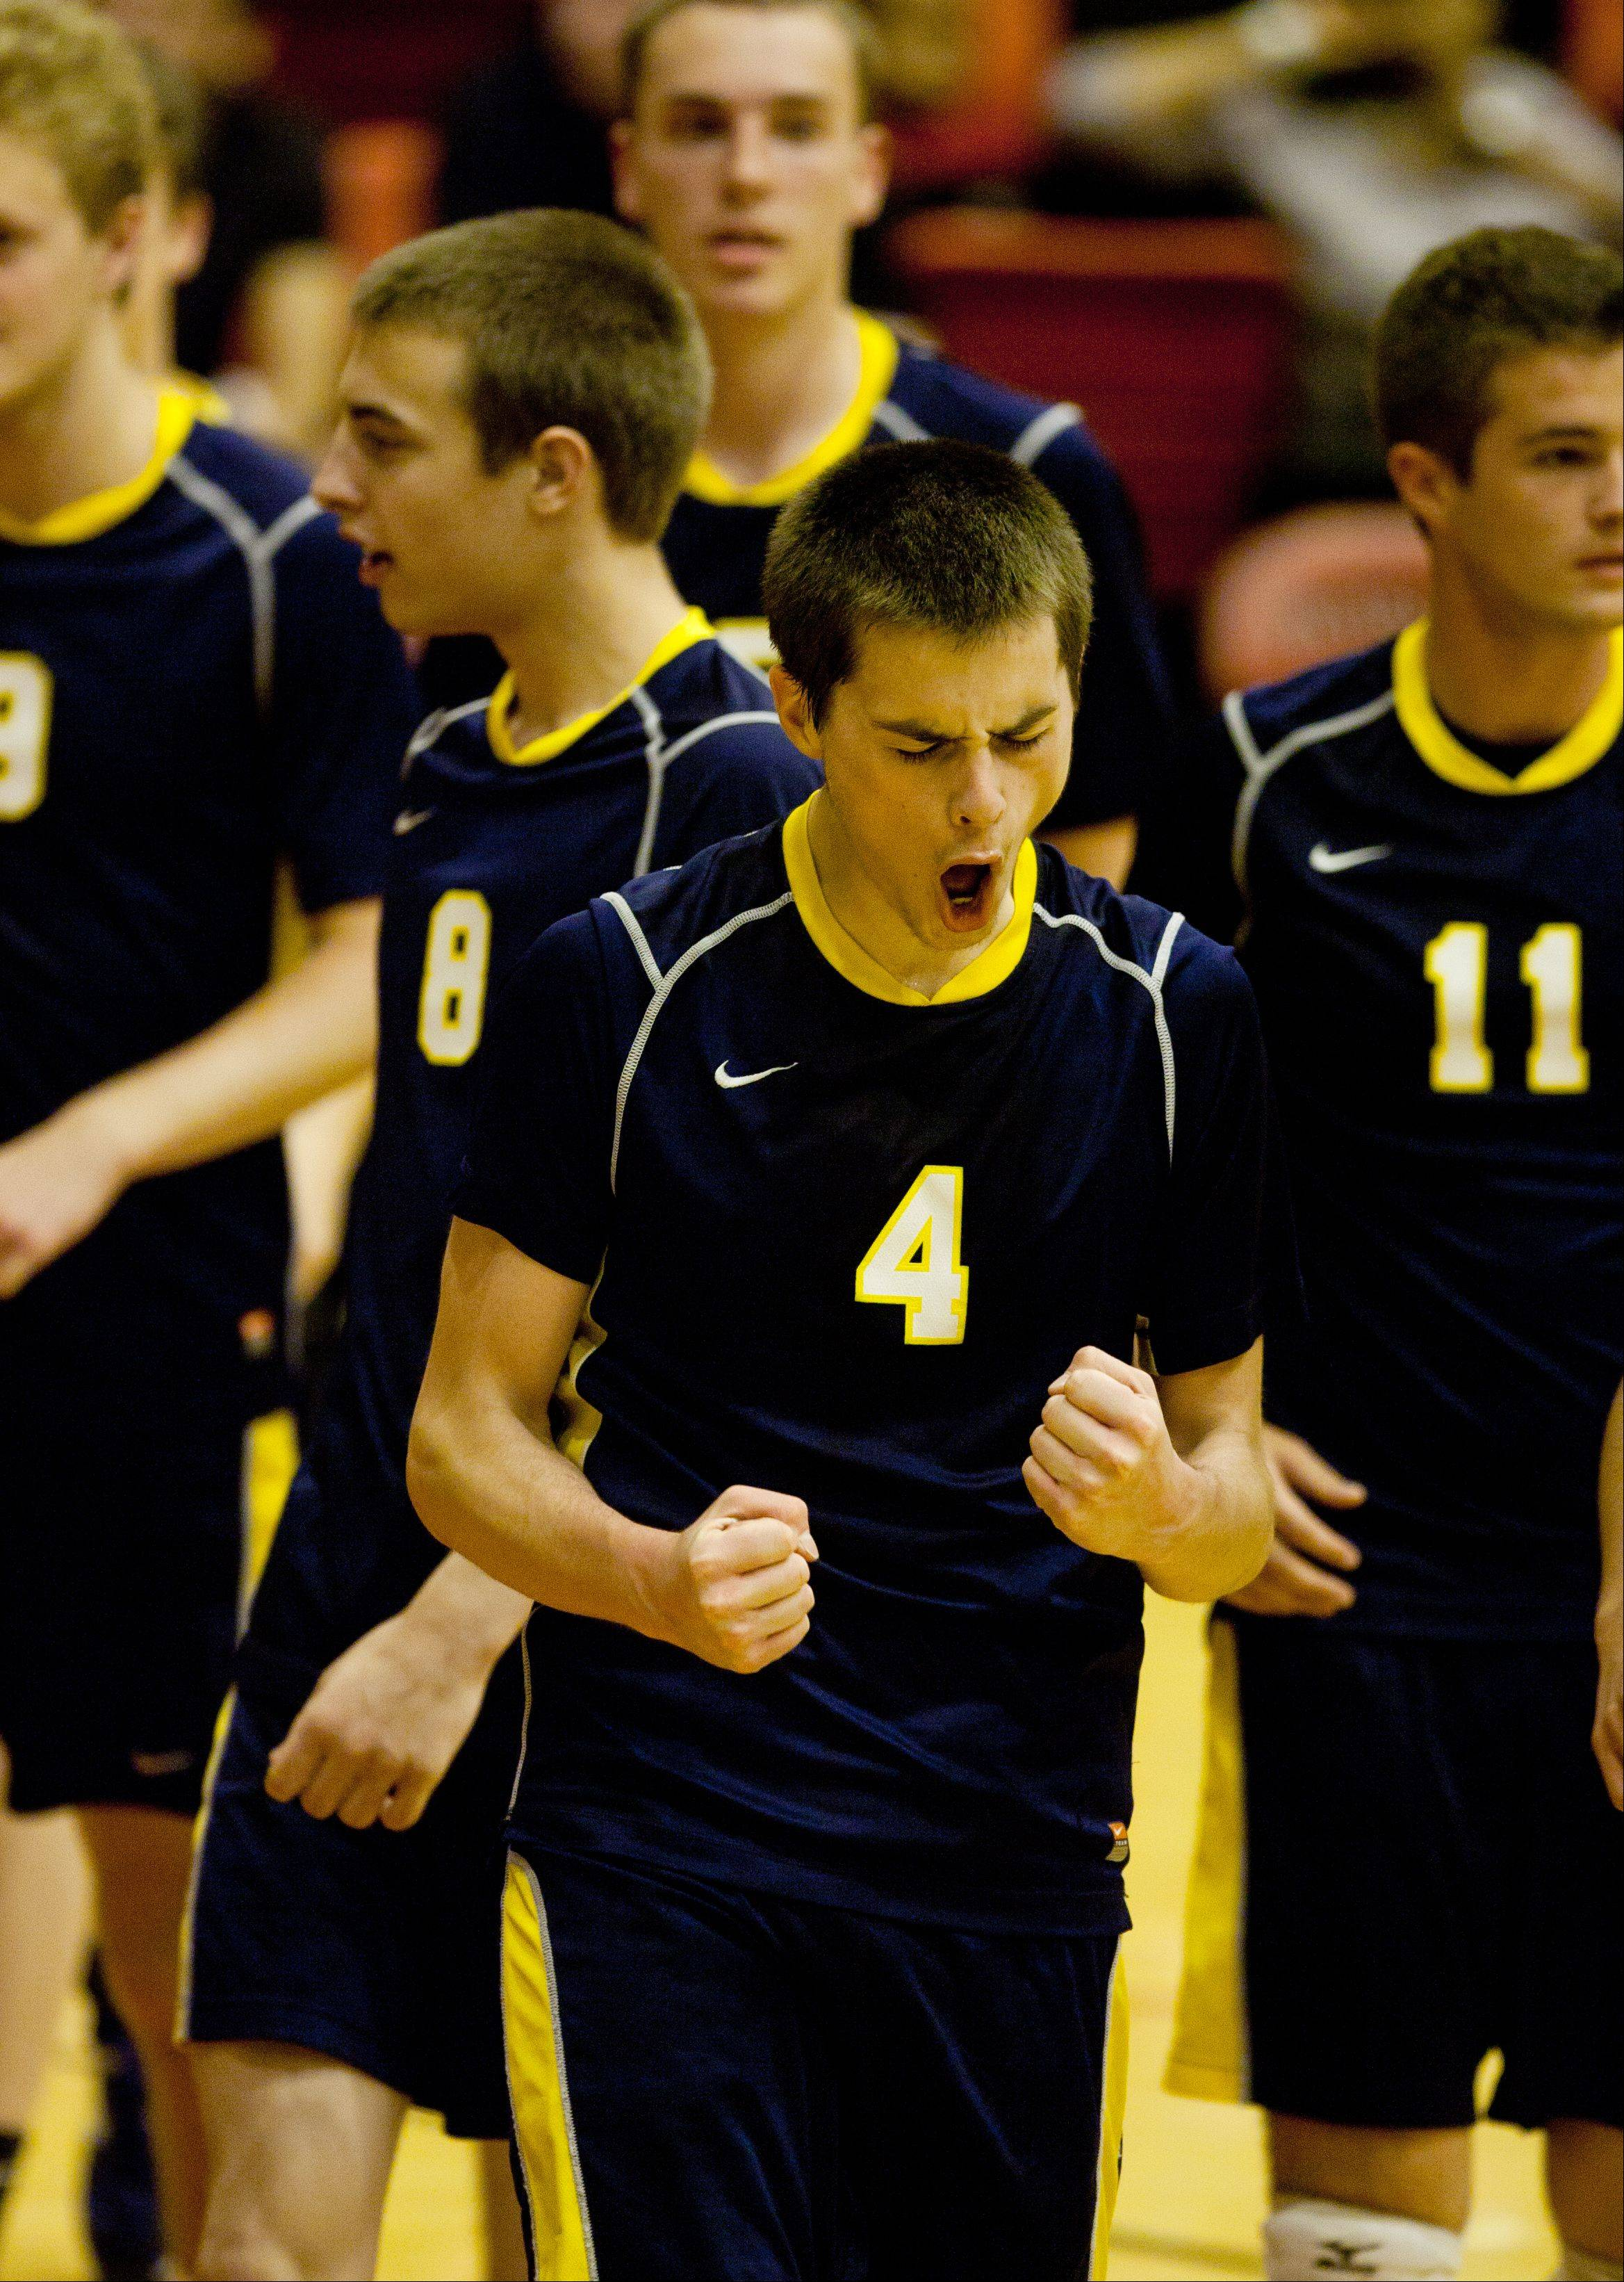 Neuqua Valley's Jeremy Royko (4) celebrates a win over Waubonsie Valley, during the Proviso West boys volleyball sectional semifinals.